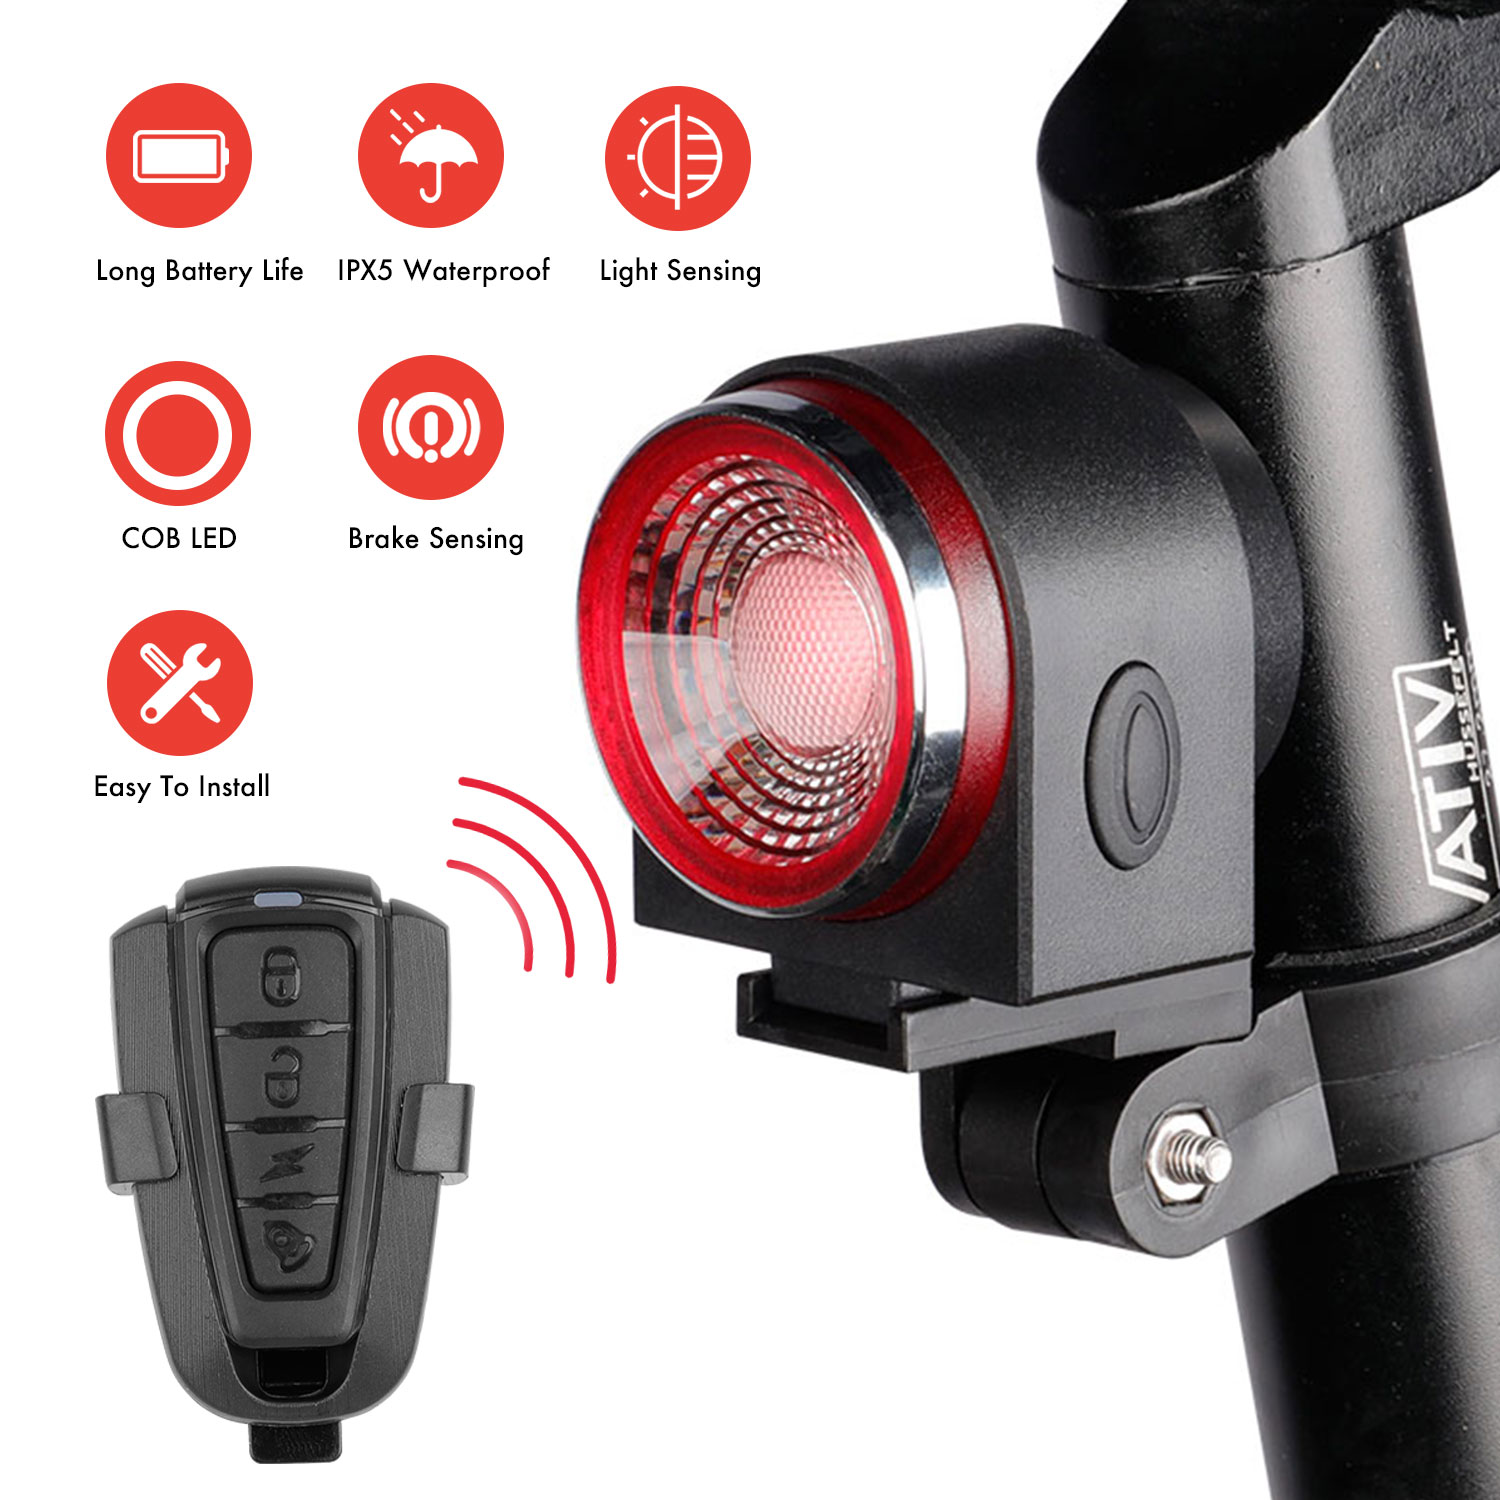 A8 Bicycle Rear Light Cycling LED Taillight Personal Security With Anti Thief Alarm Remote Control MTB Road Bike Tail Waterproof